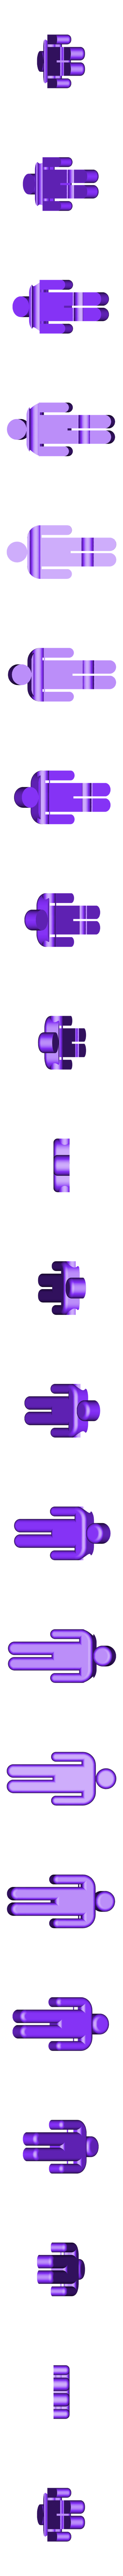 toilet_person_A.stl Download free STL file Ladder Peg Toy 3000: Codename Overkill • 3D printing object, ecoiras